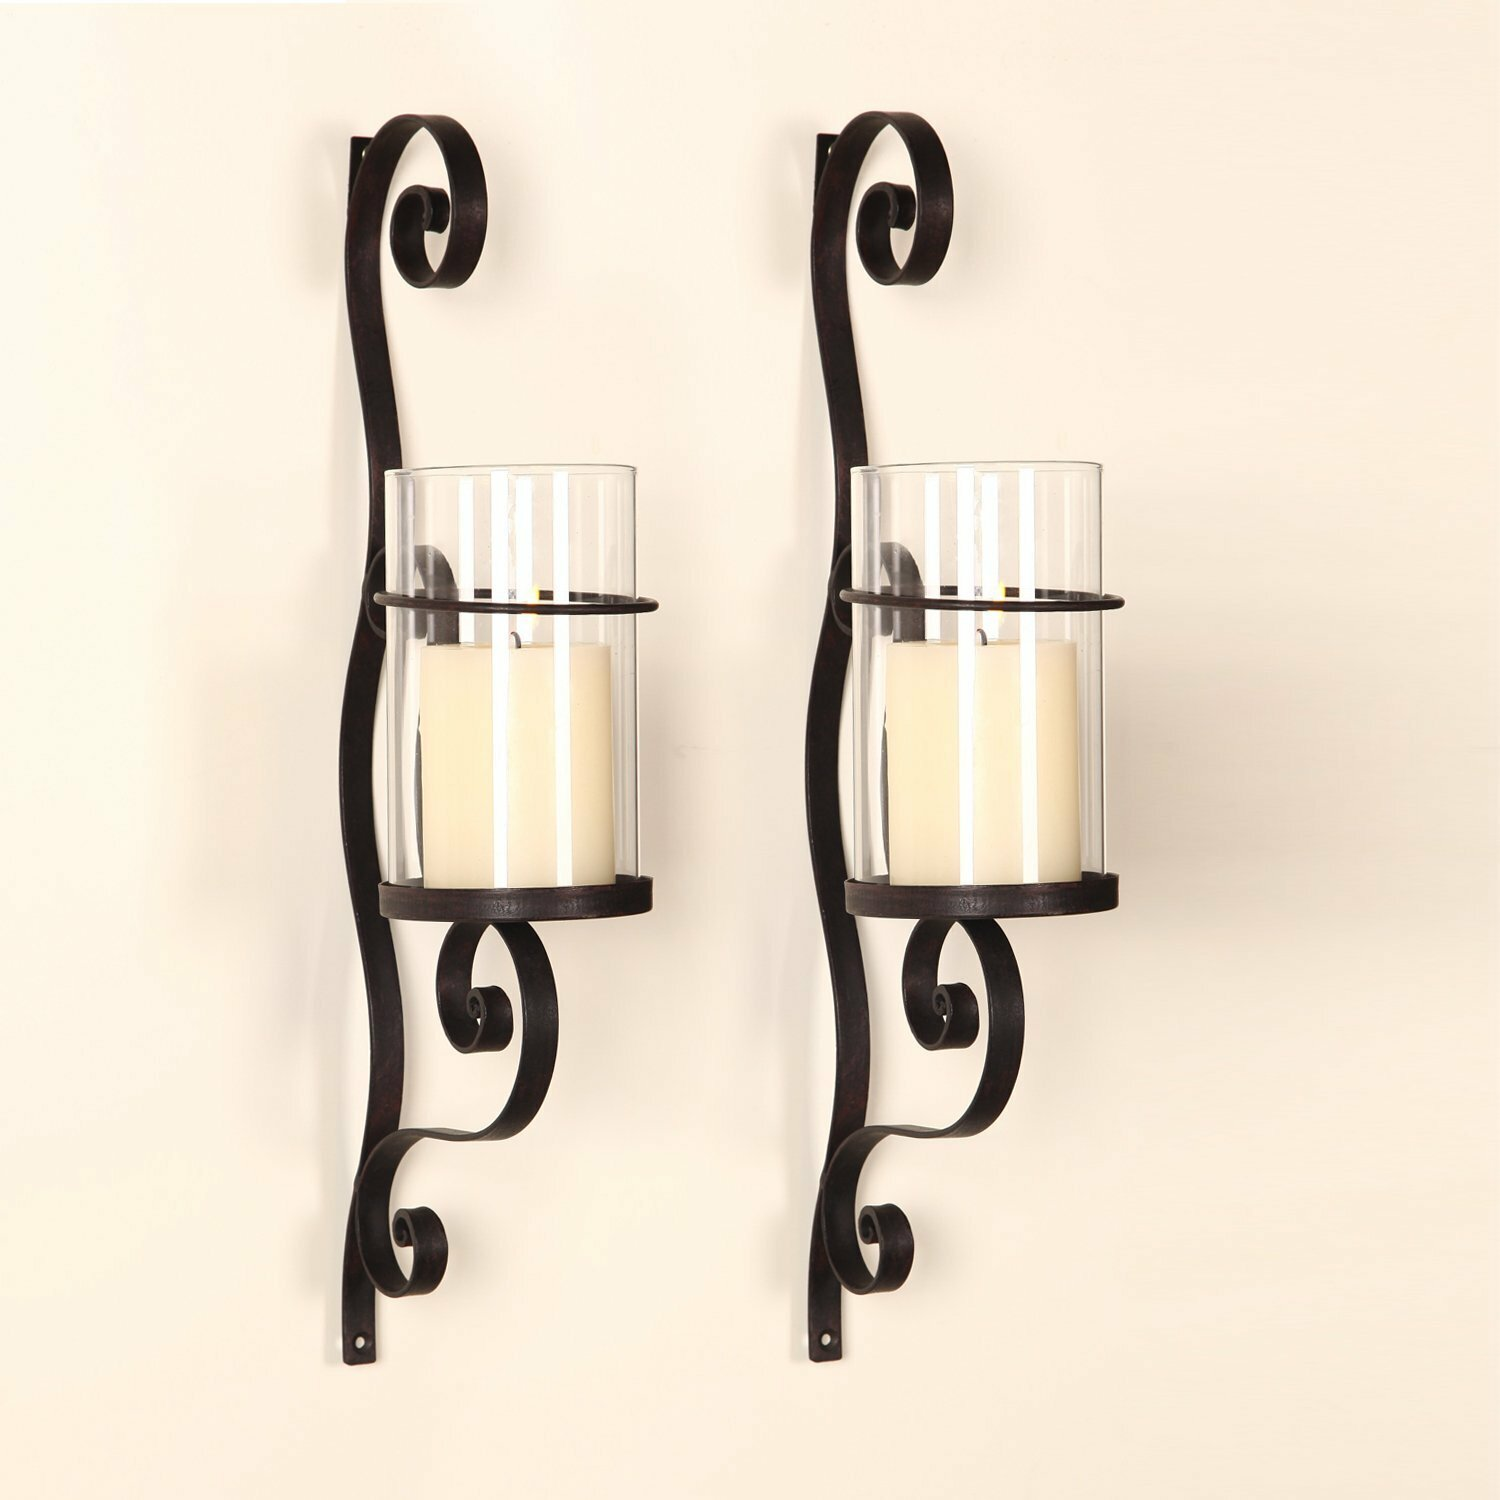 Wall Sconces Iron : AdecoTrading Iron Wall Sconce Candle Holder & Reviews Wayfair